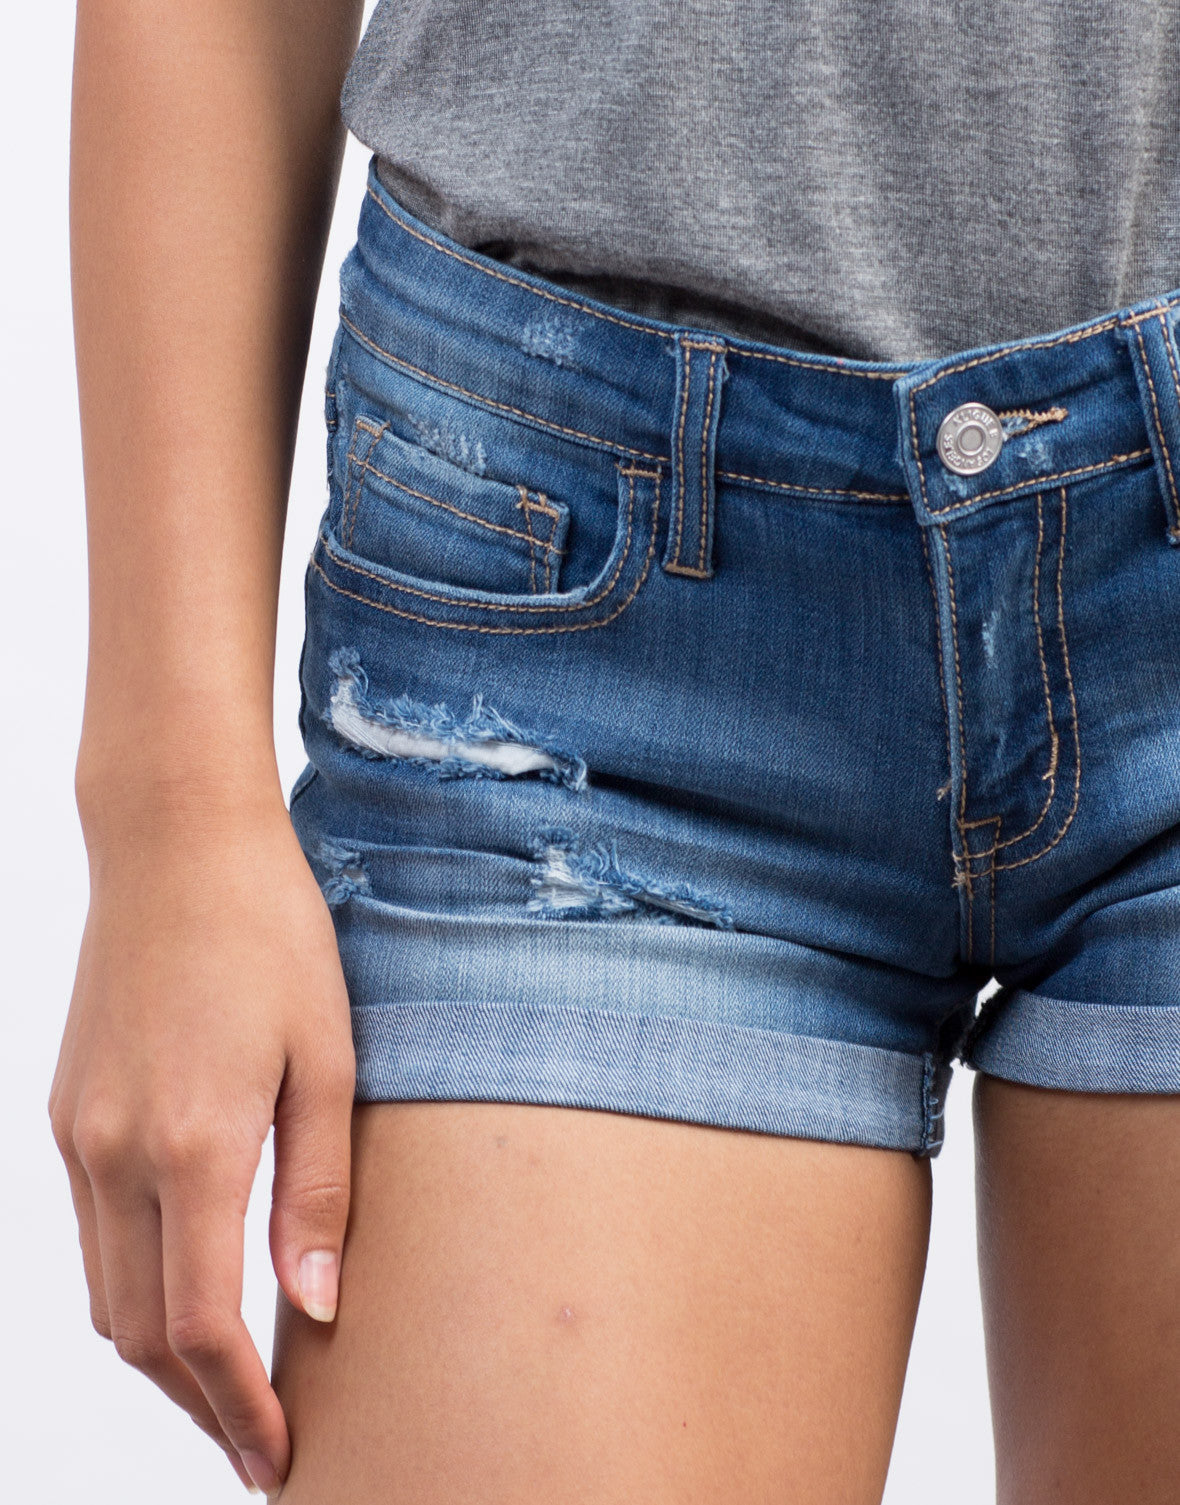 Detail of Rolled Up Denim Shorts